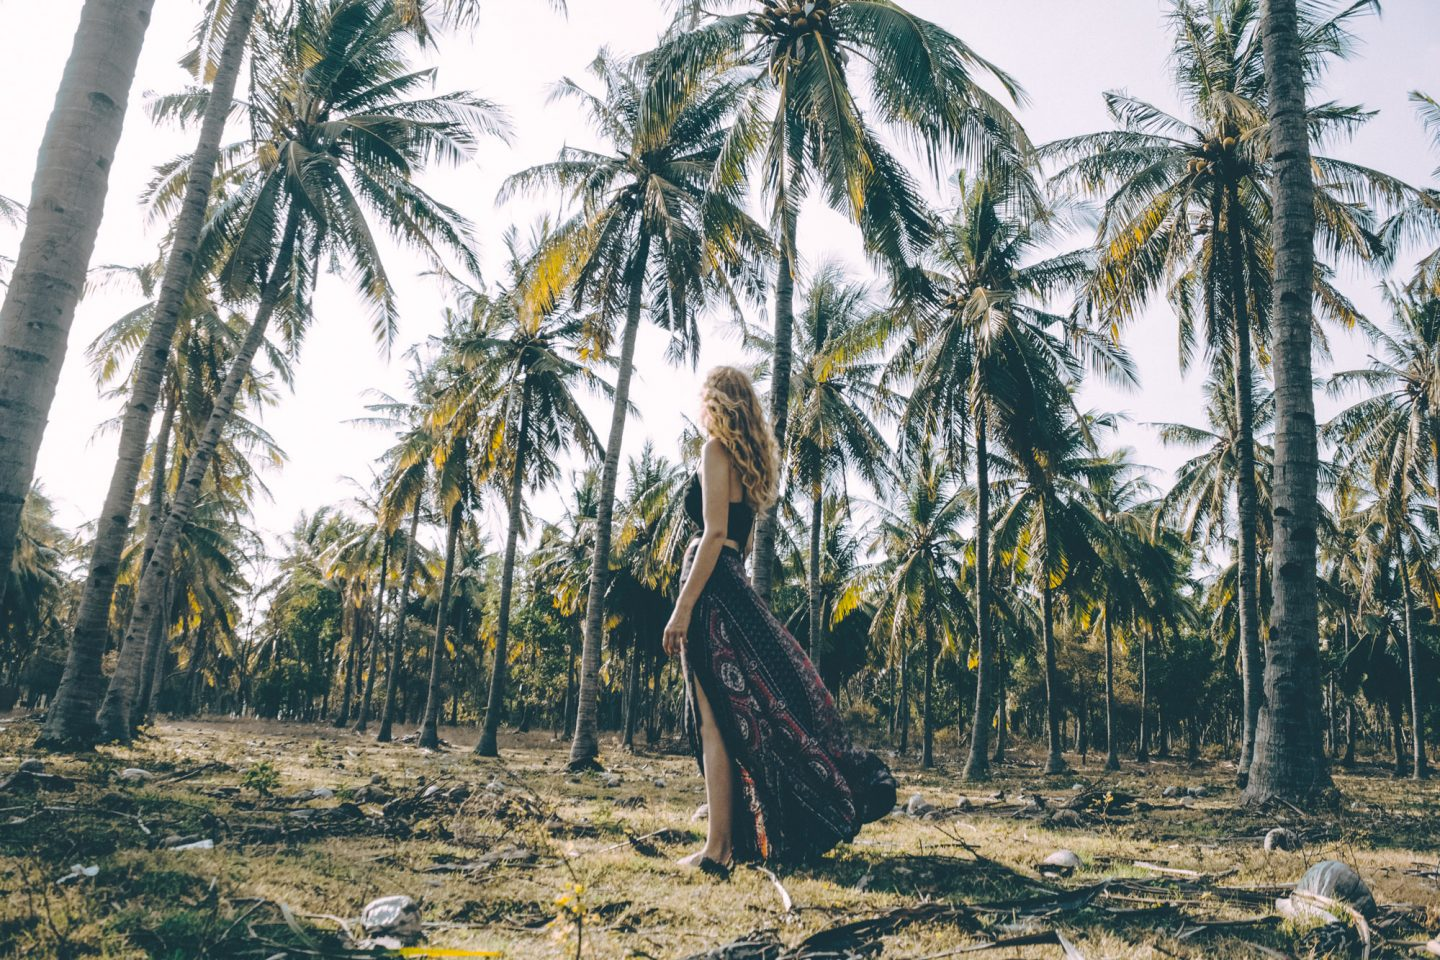 Into the Coconut Forest